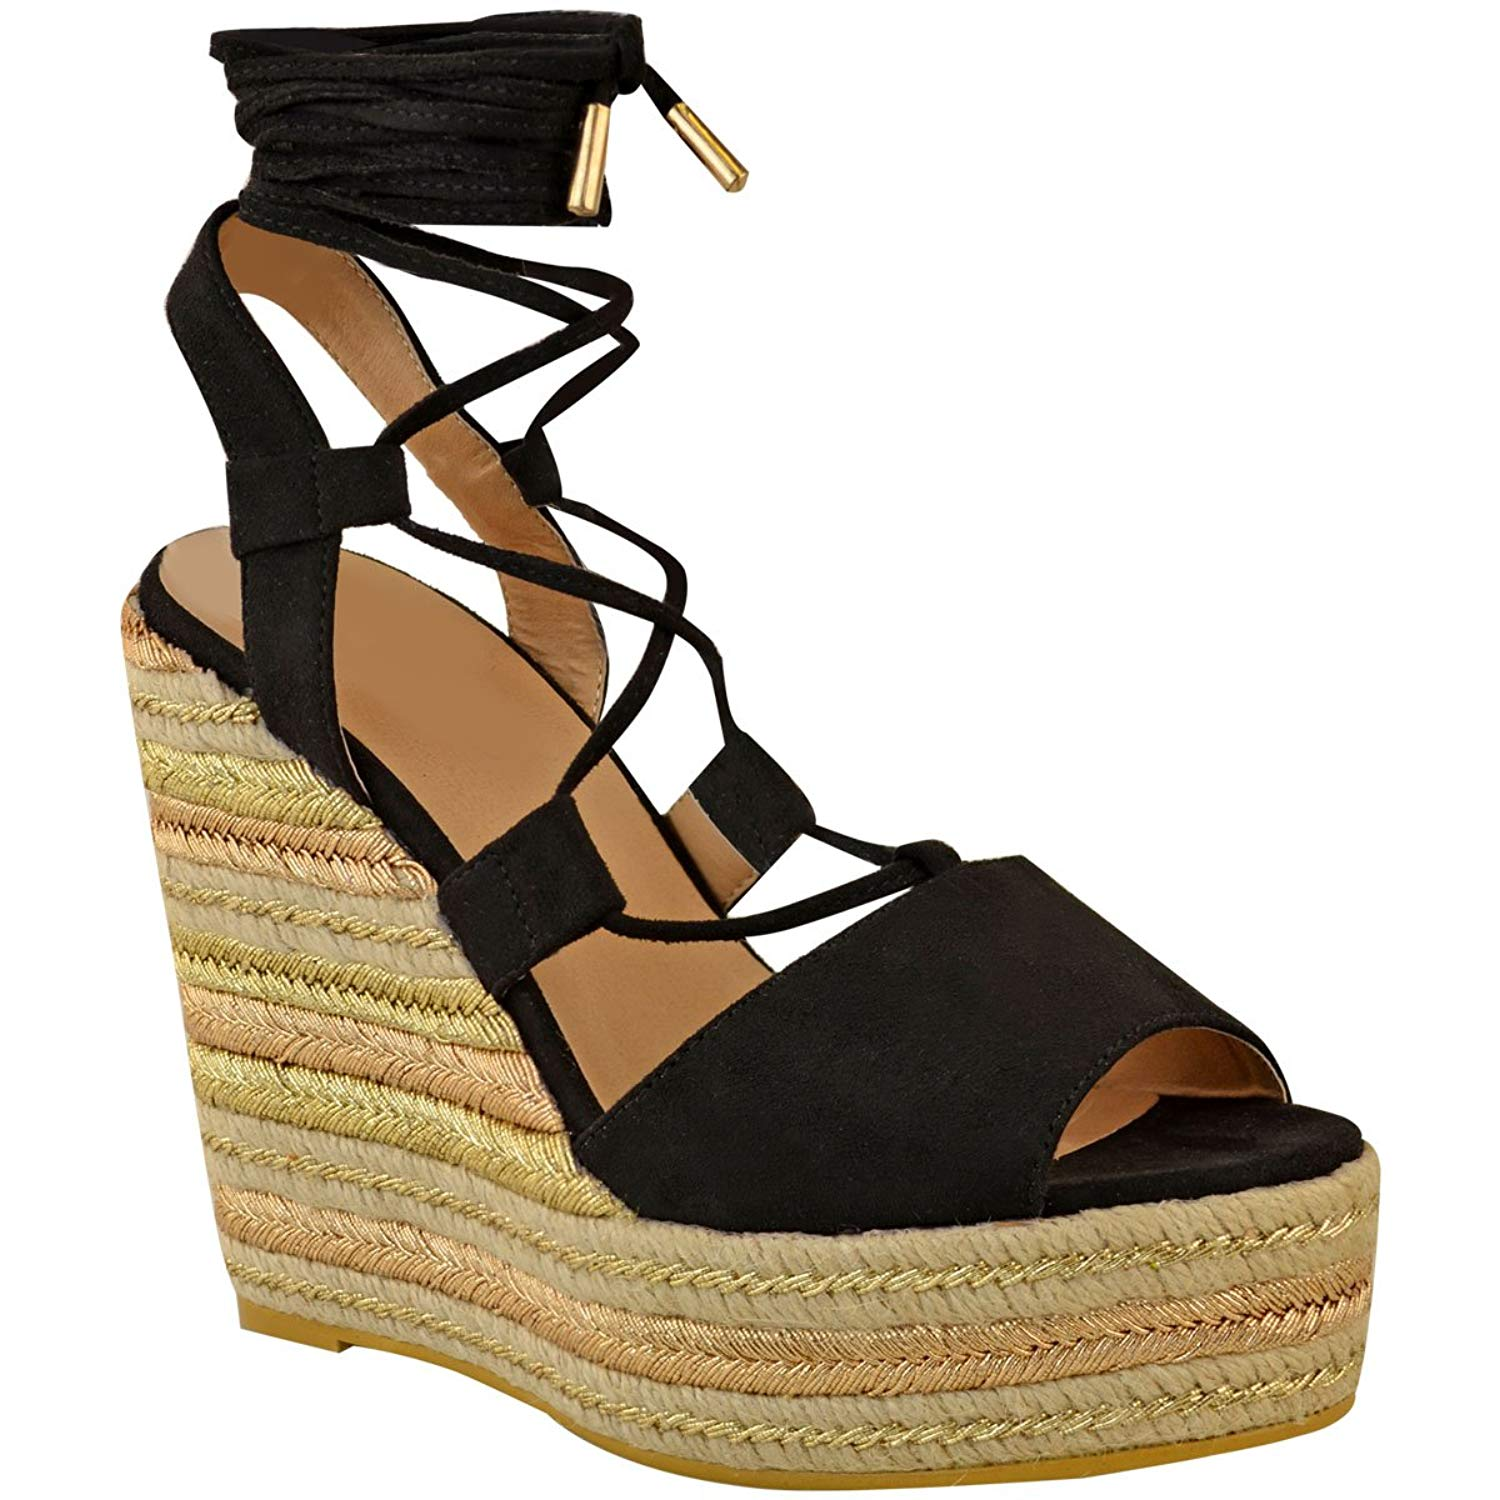 48f5dd02ed8 Get Quotations · Fashion Thirsty Womens Wedge Espadrille Sandals Lace Tie Up  Strappy Party Size